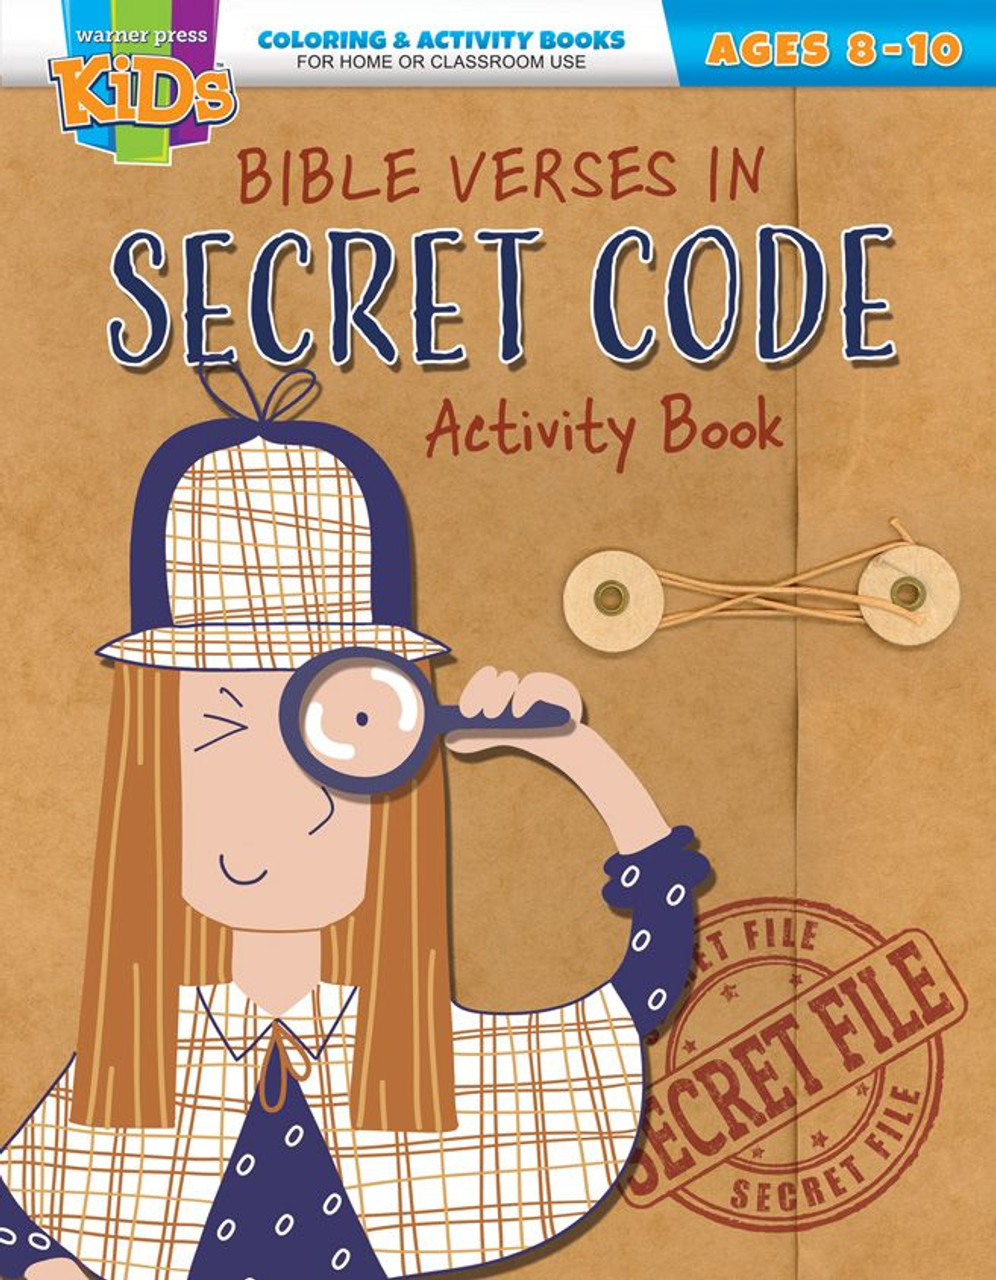 Bible Verses in Secret Code (activity book)